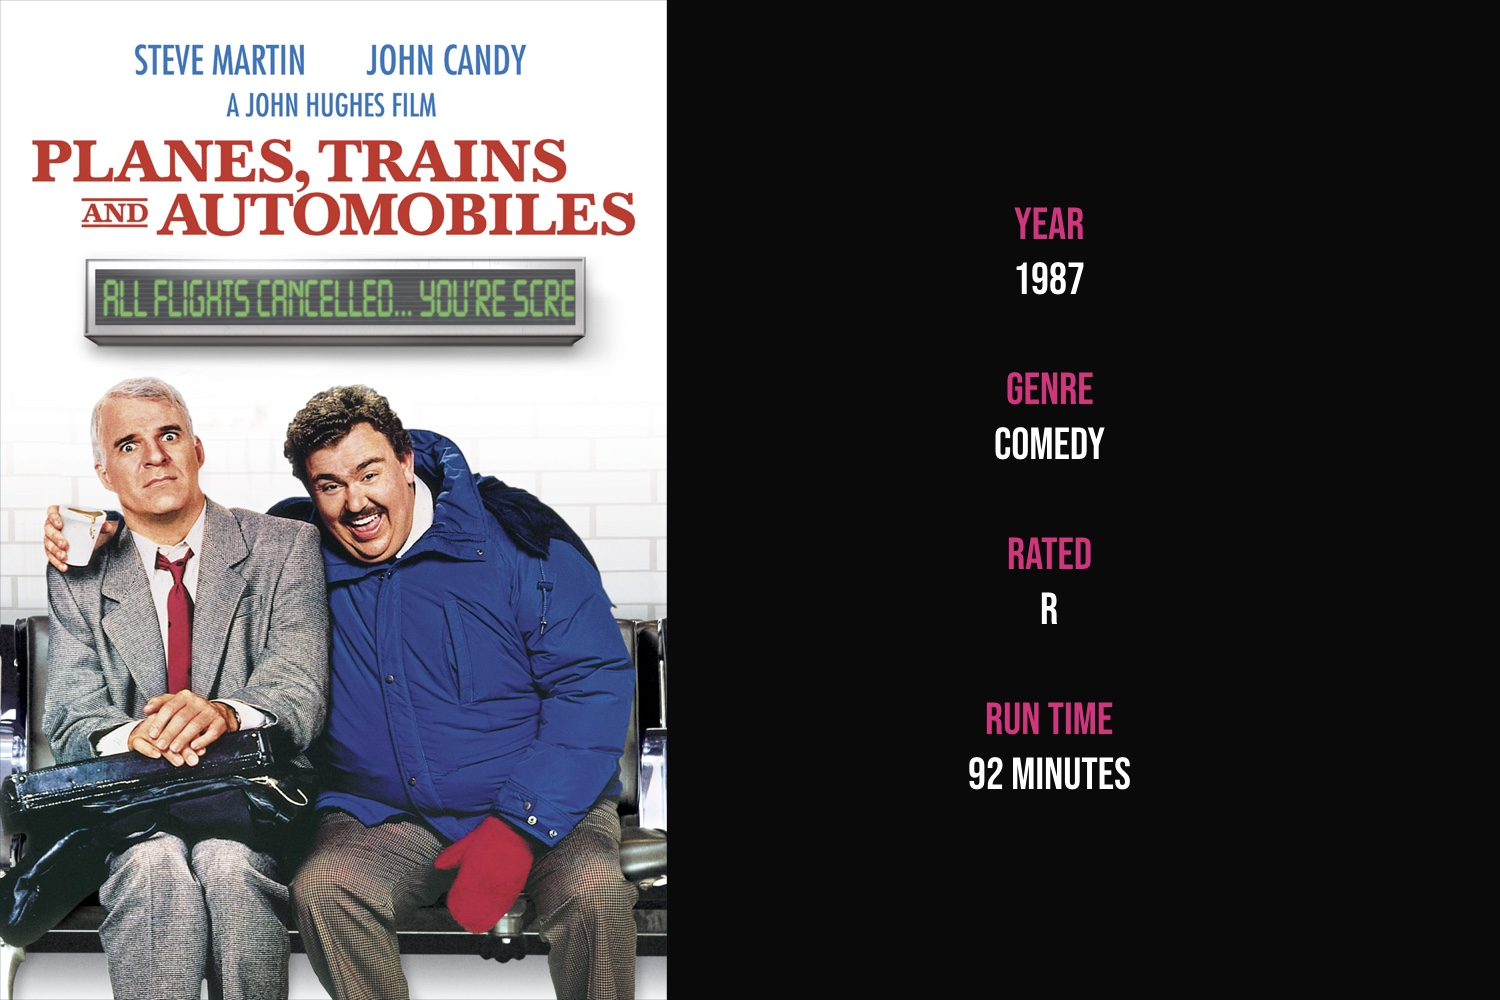 Planes, Trains and Automobiles - An advertising executive desperately trying to get home to his family for Thanksgiving ends up on a three-day odyssey from New York to Chicago trip with a shower curtain ring salesmen.iTunes | Amazon